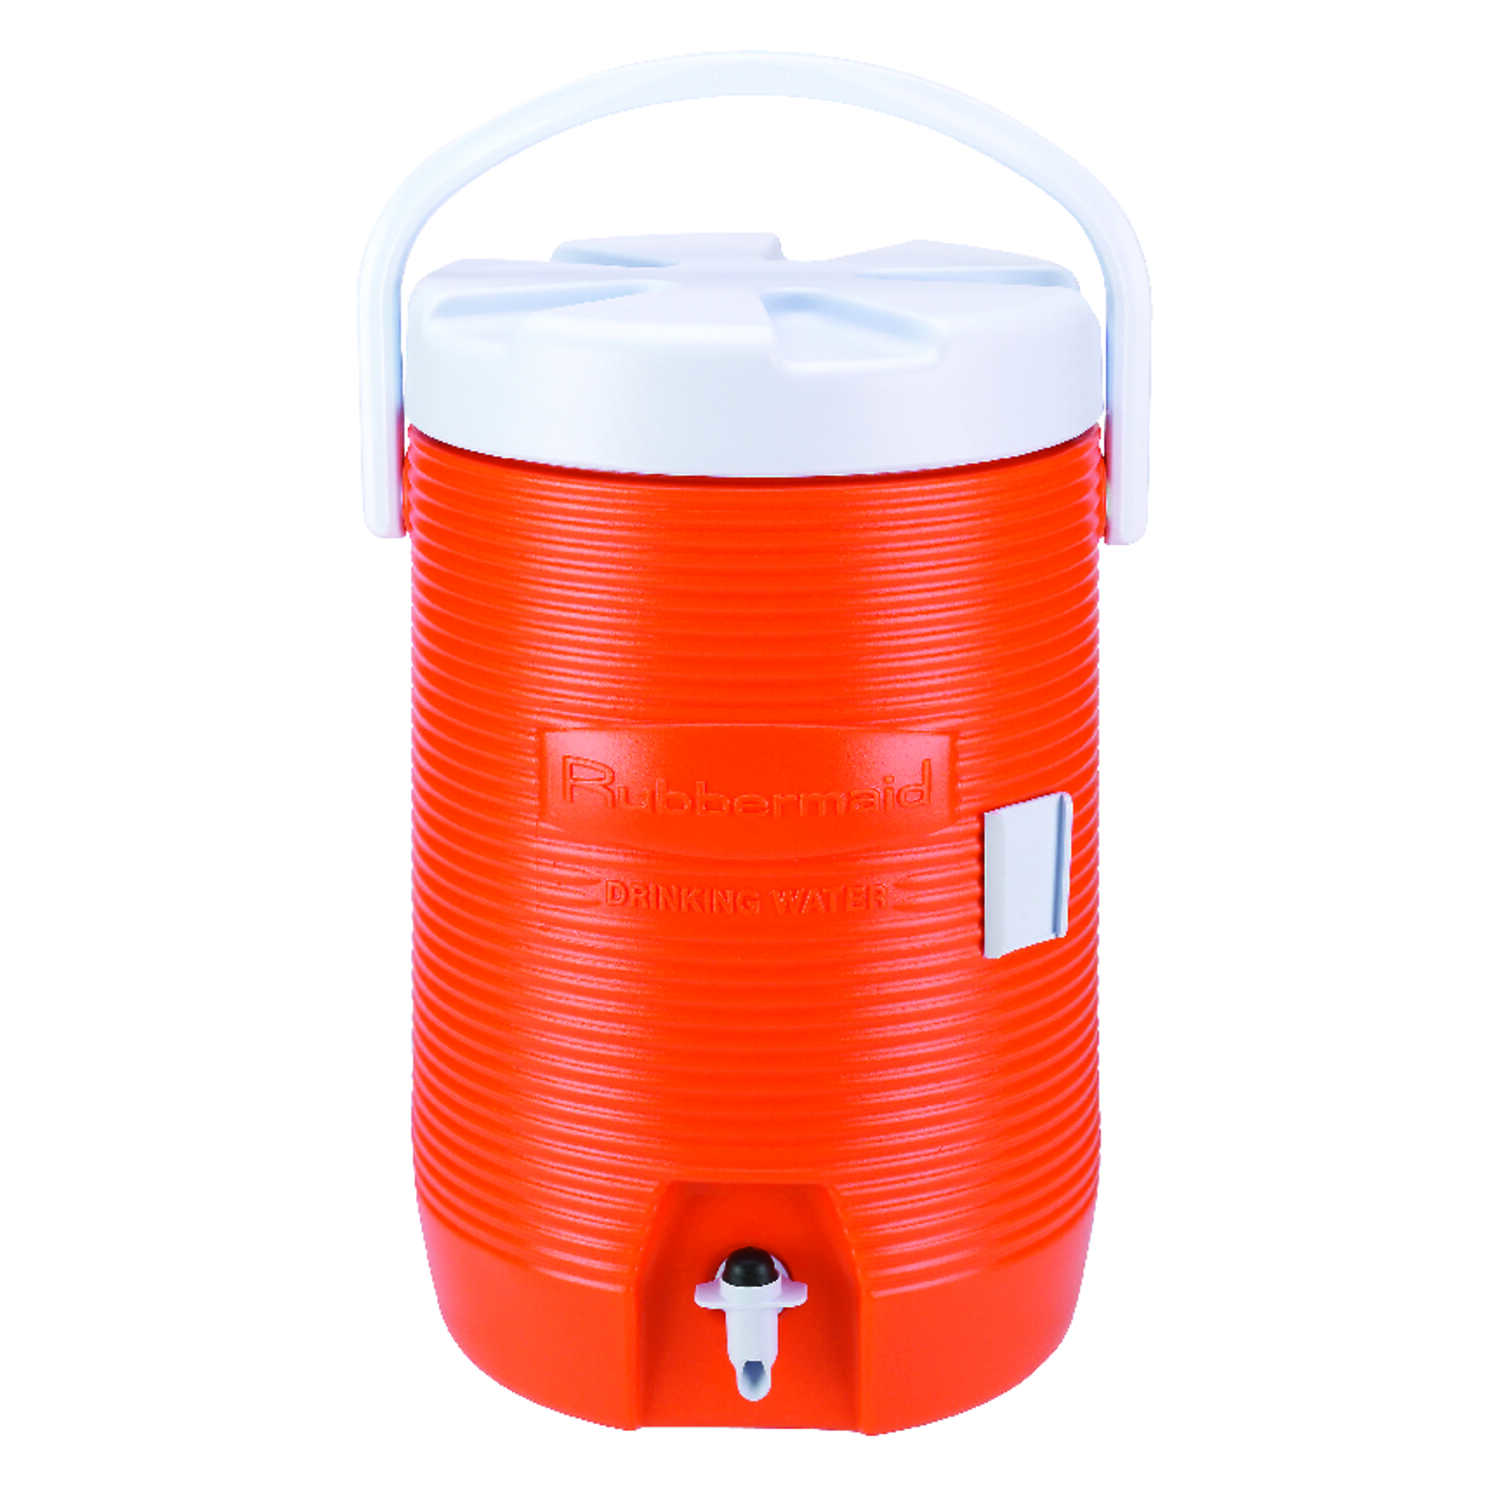 Rubbermaid  Water Cooler  3 gal. Orange